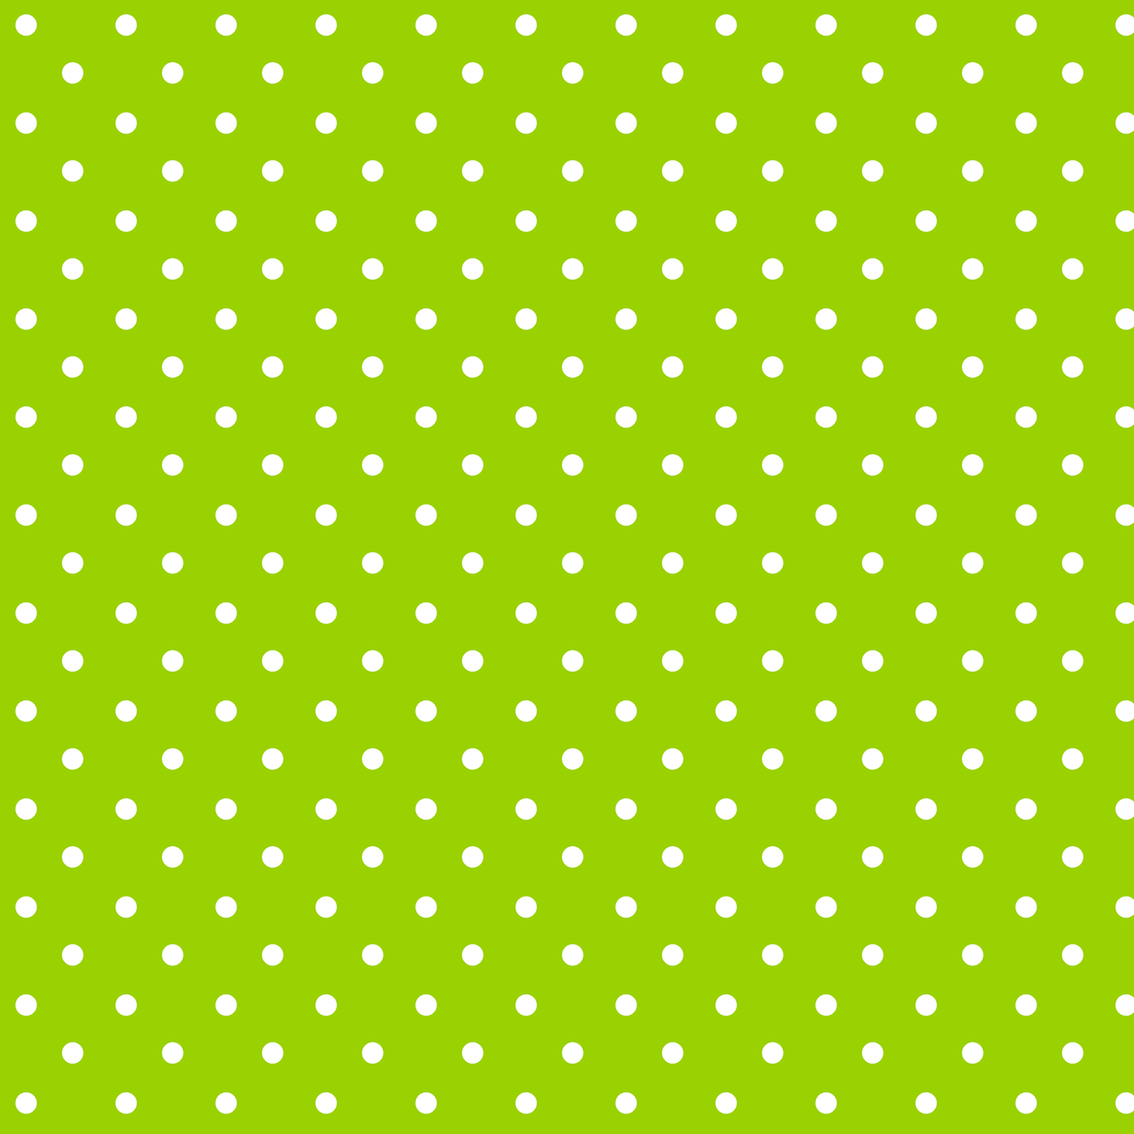 Free srapbooking and gift wrapping paper yellow green for Paper design wallpaper